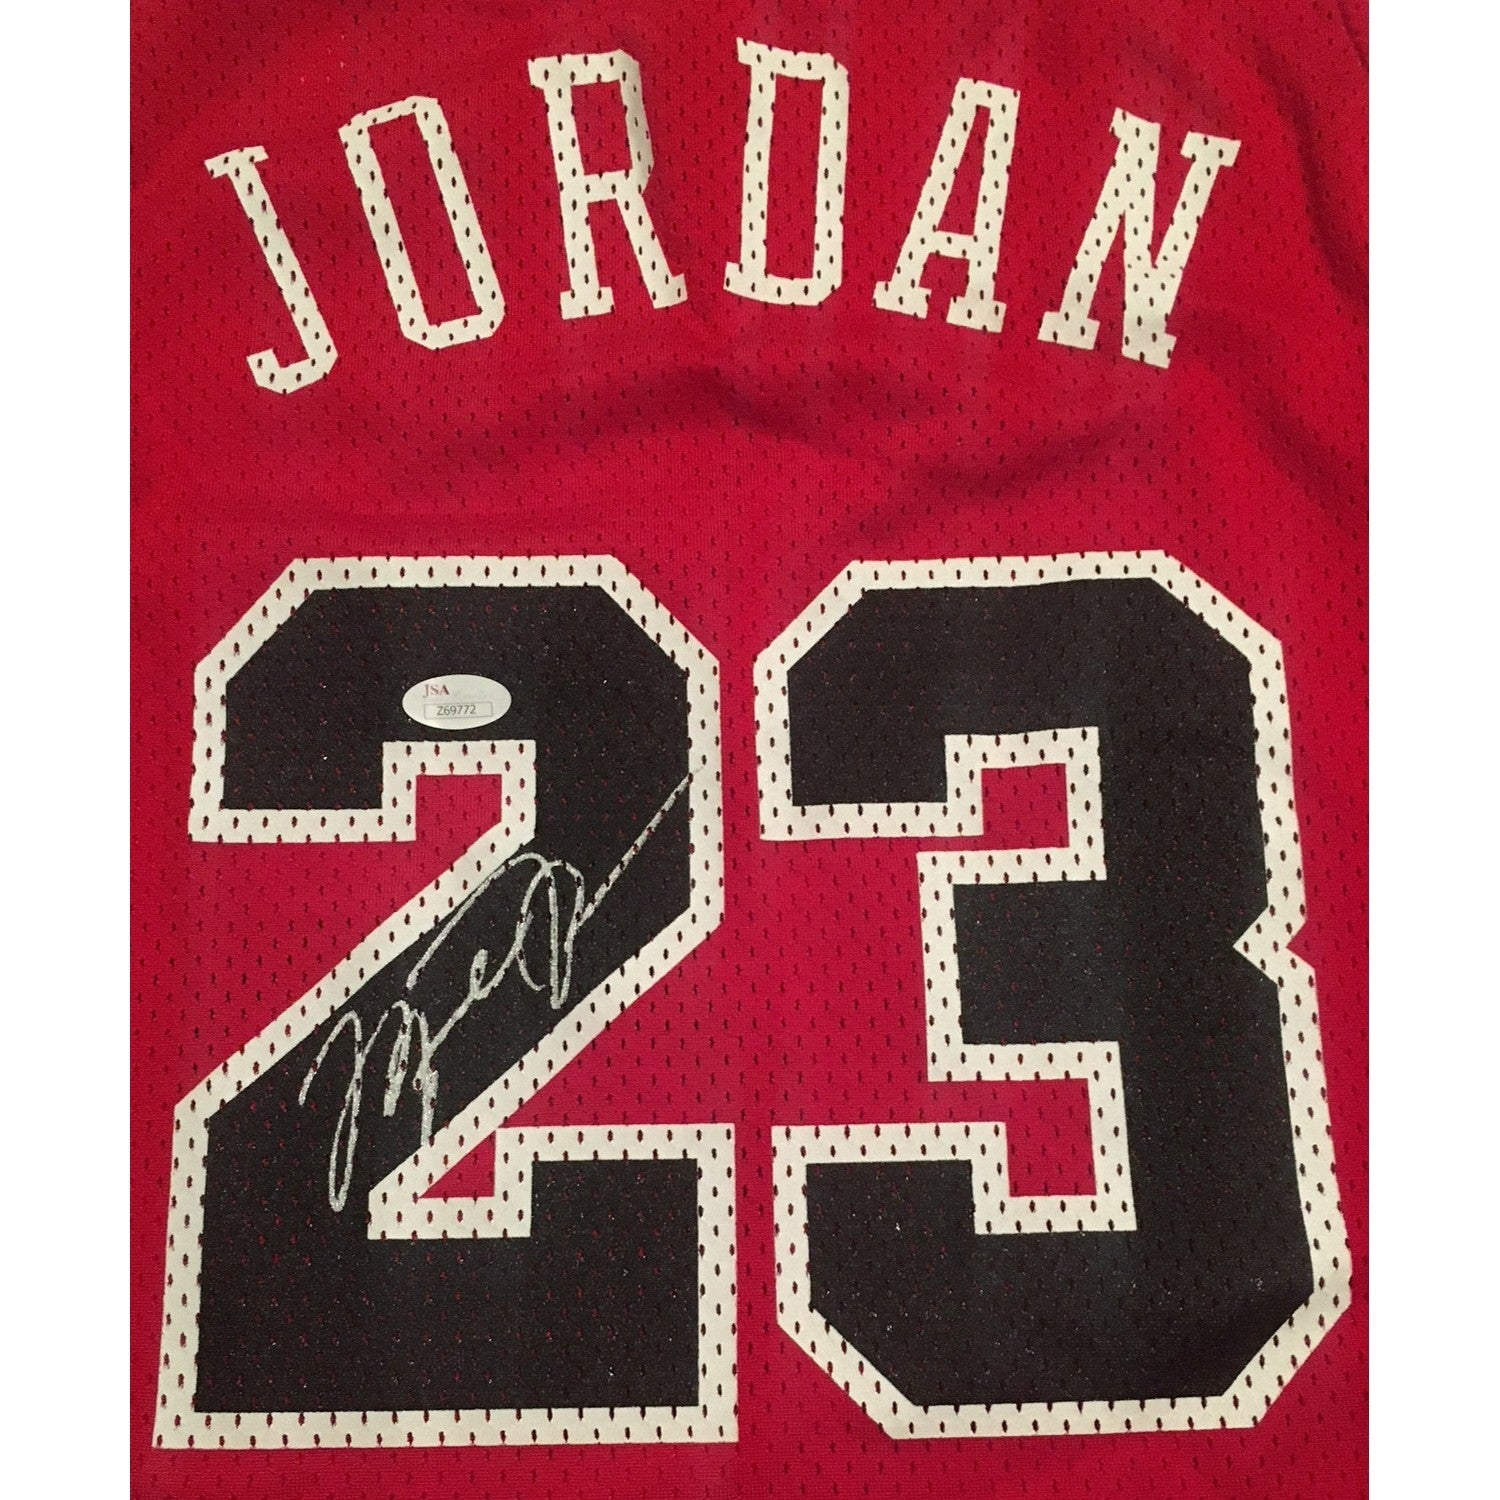 buy online e5b90 a2405 Michael Jordan Autographed Chicago Bulls 1984 Nike Signed Authentic  Basketball Red Jersey JSA COA